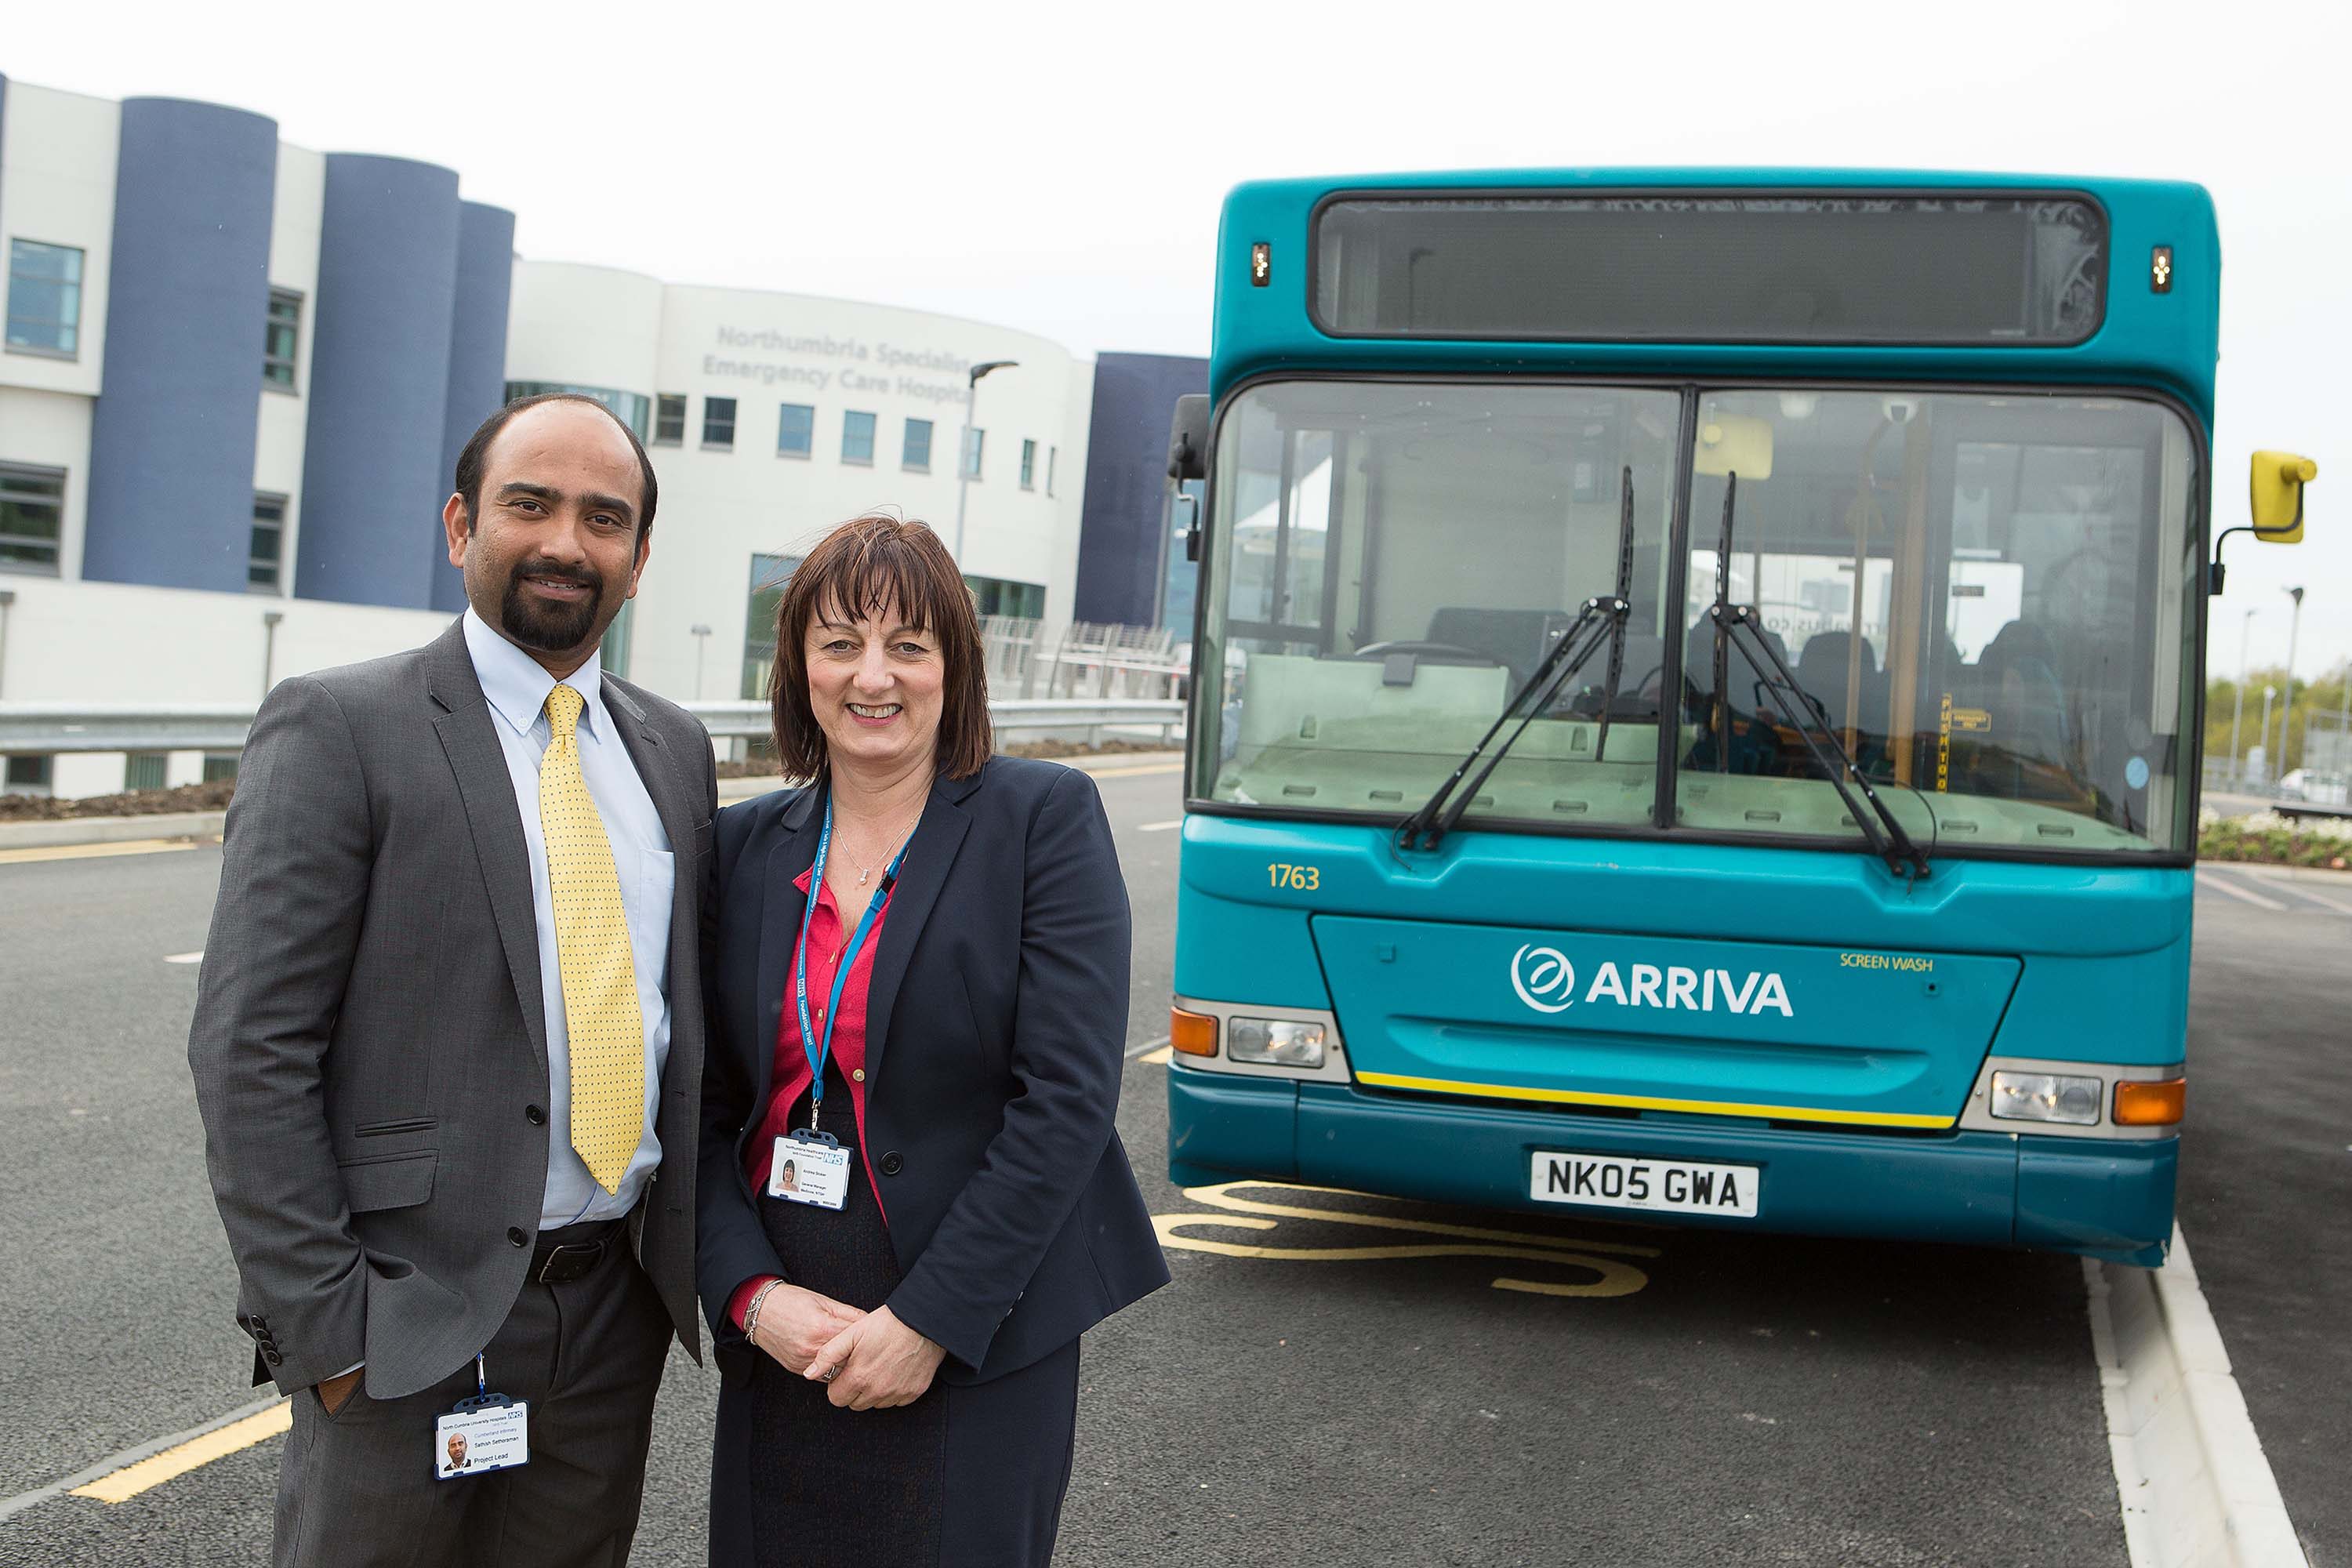 Bus service 'just the ticket' for new Northumbria hospital